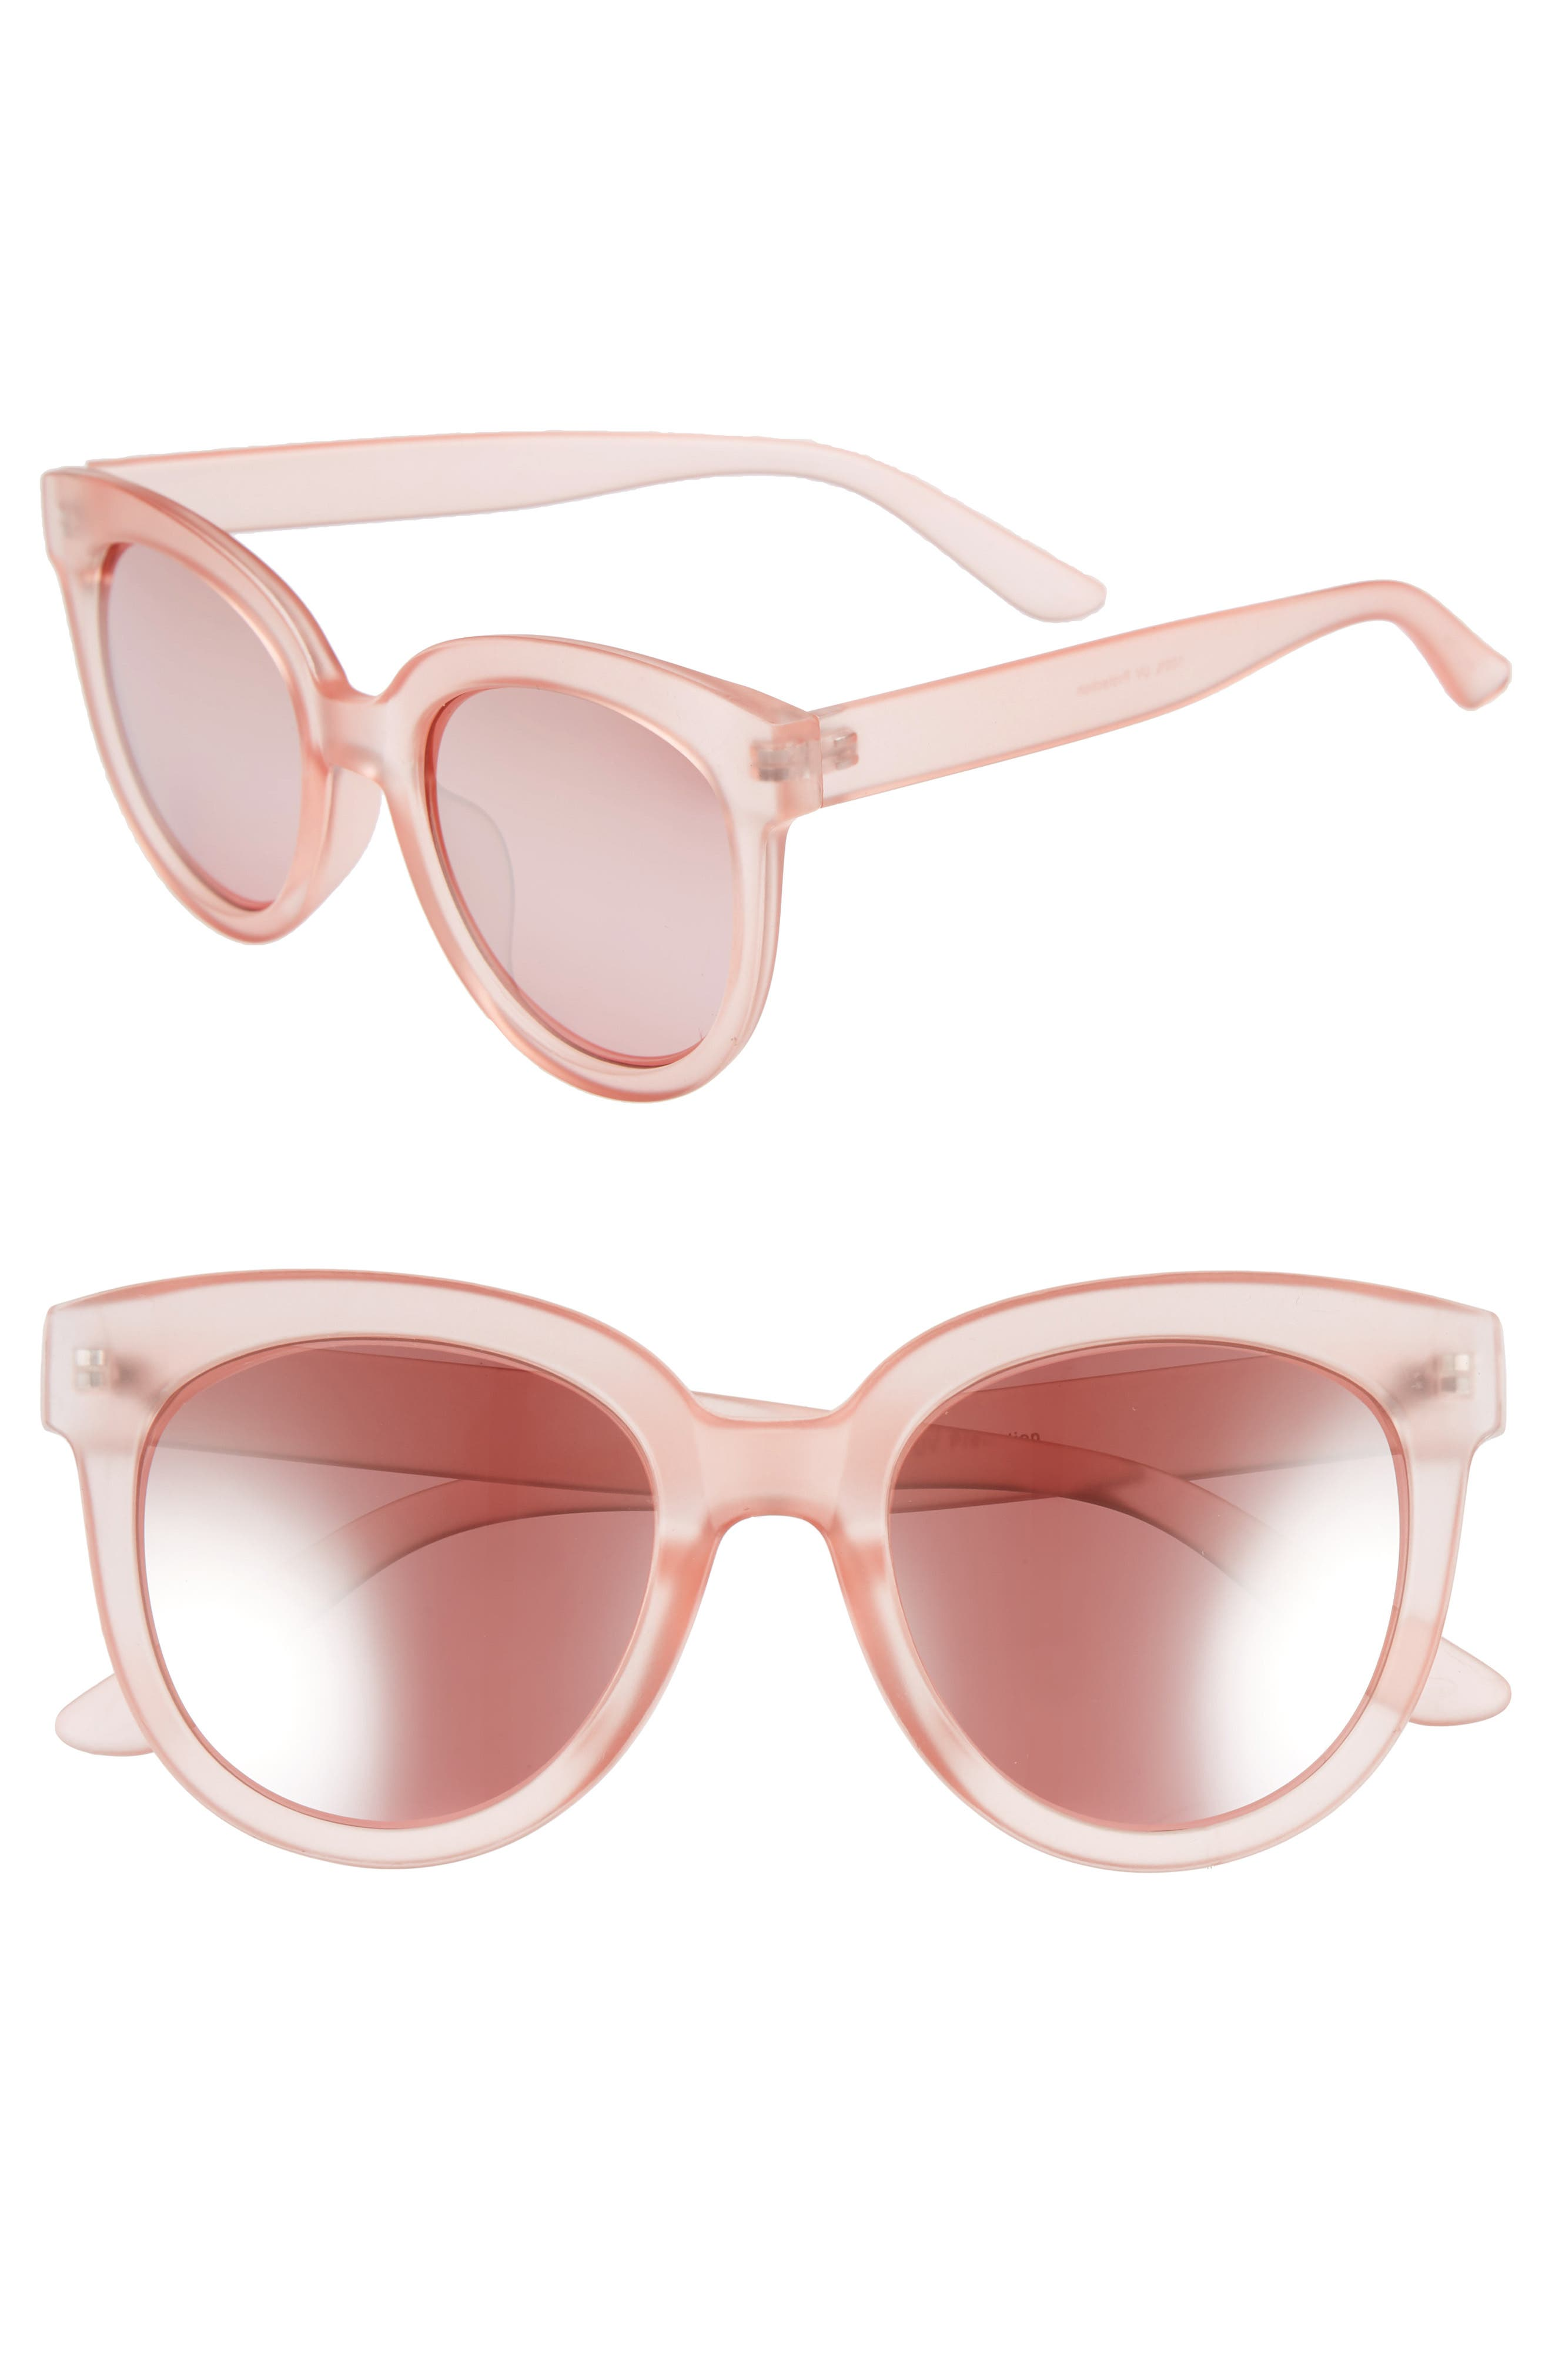 53mm Frosted Cat Eye Sunglasses,                         Main,                         color, MILKY PINK/ ROSE GOLD